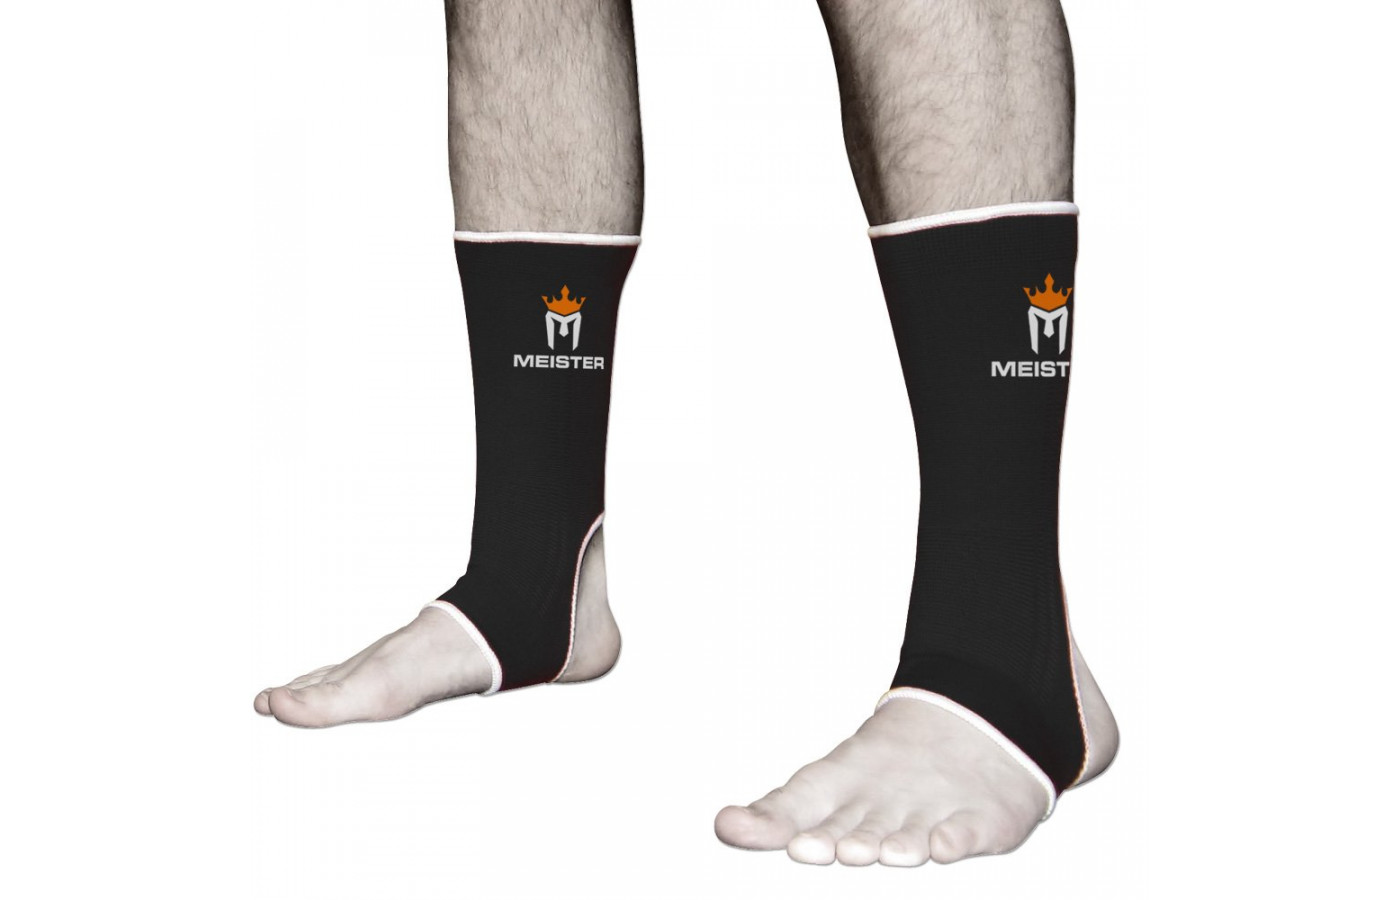 meister ankle supports black